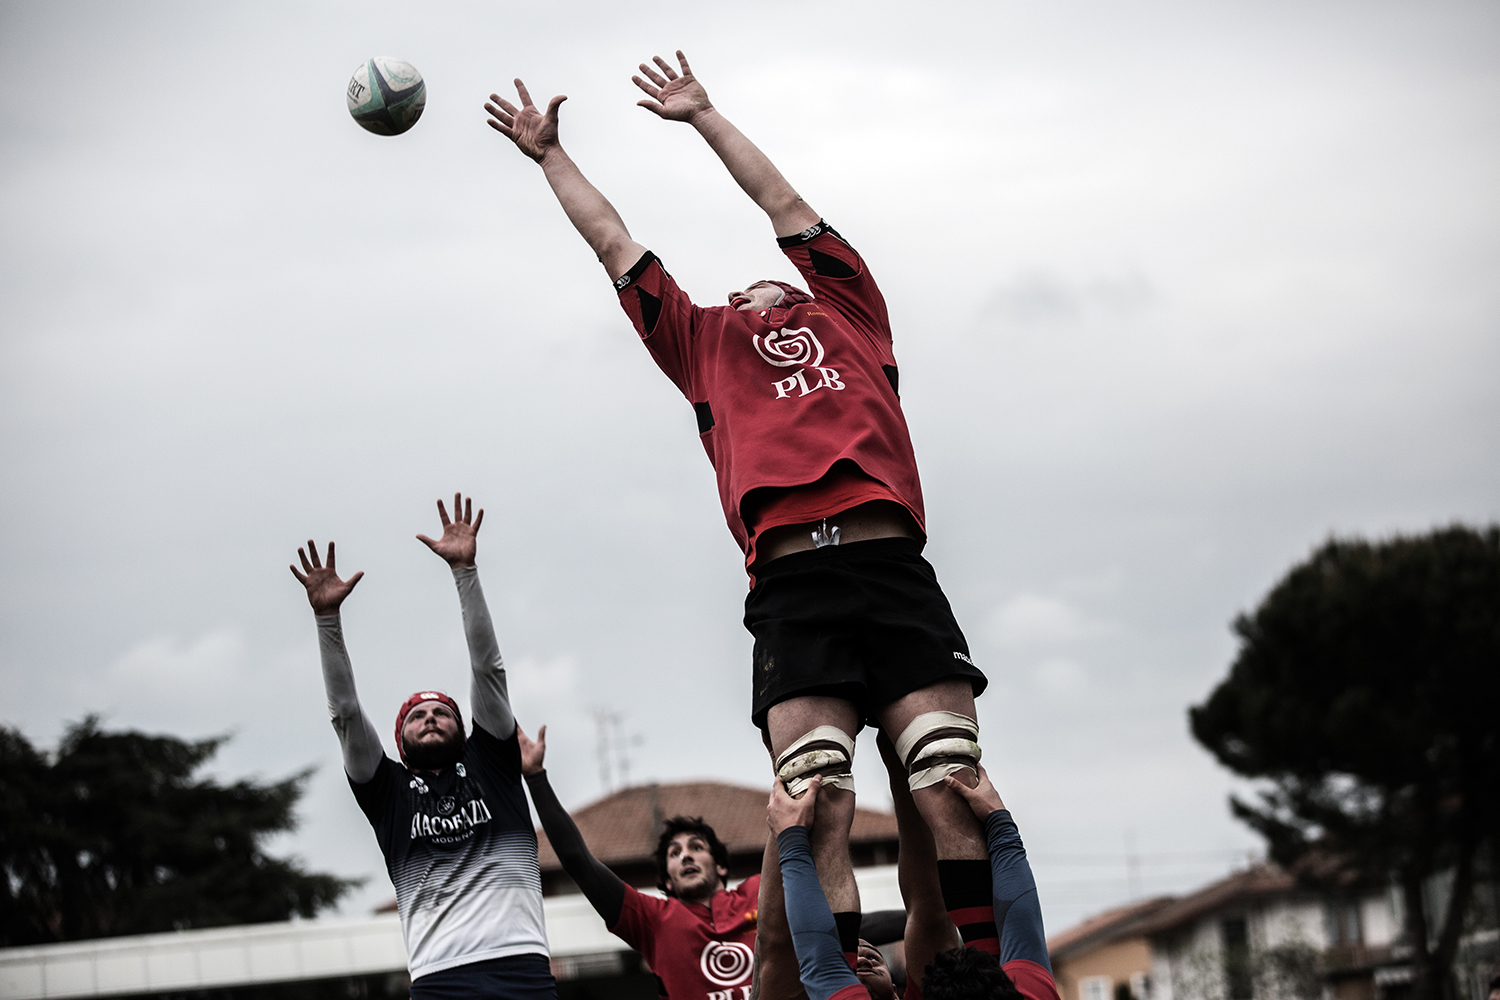 rugby_photograph_41.jpg